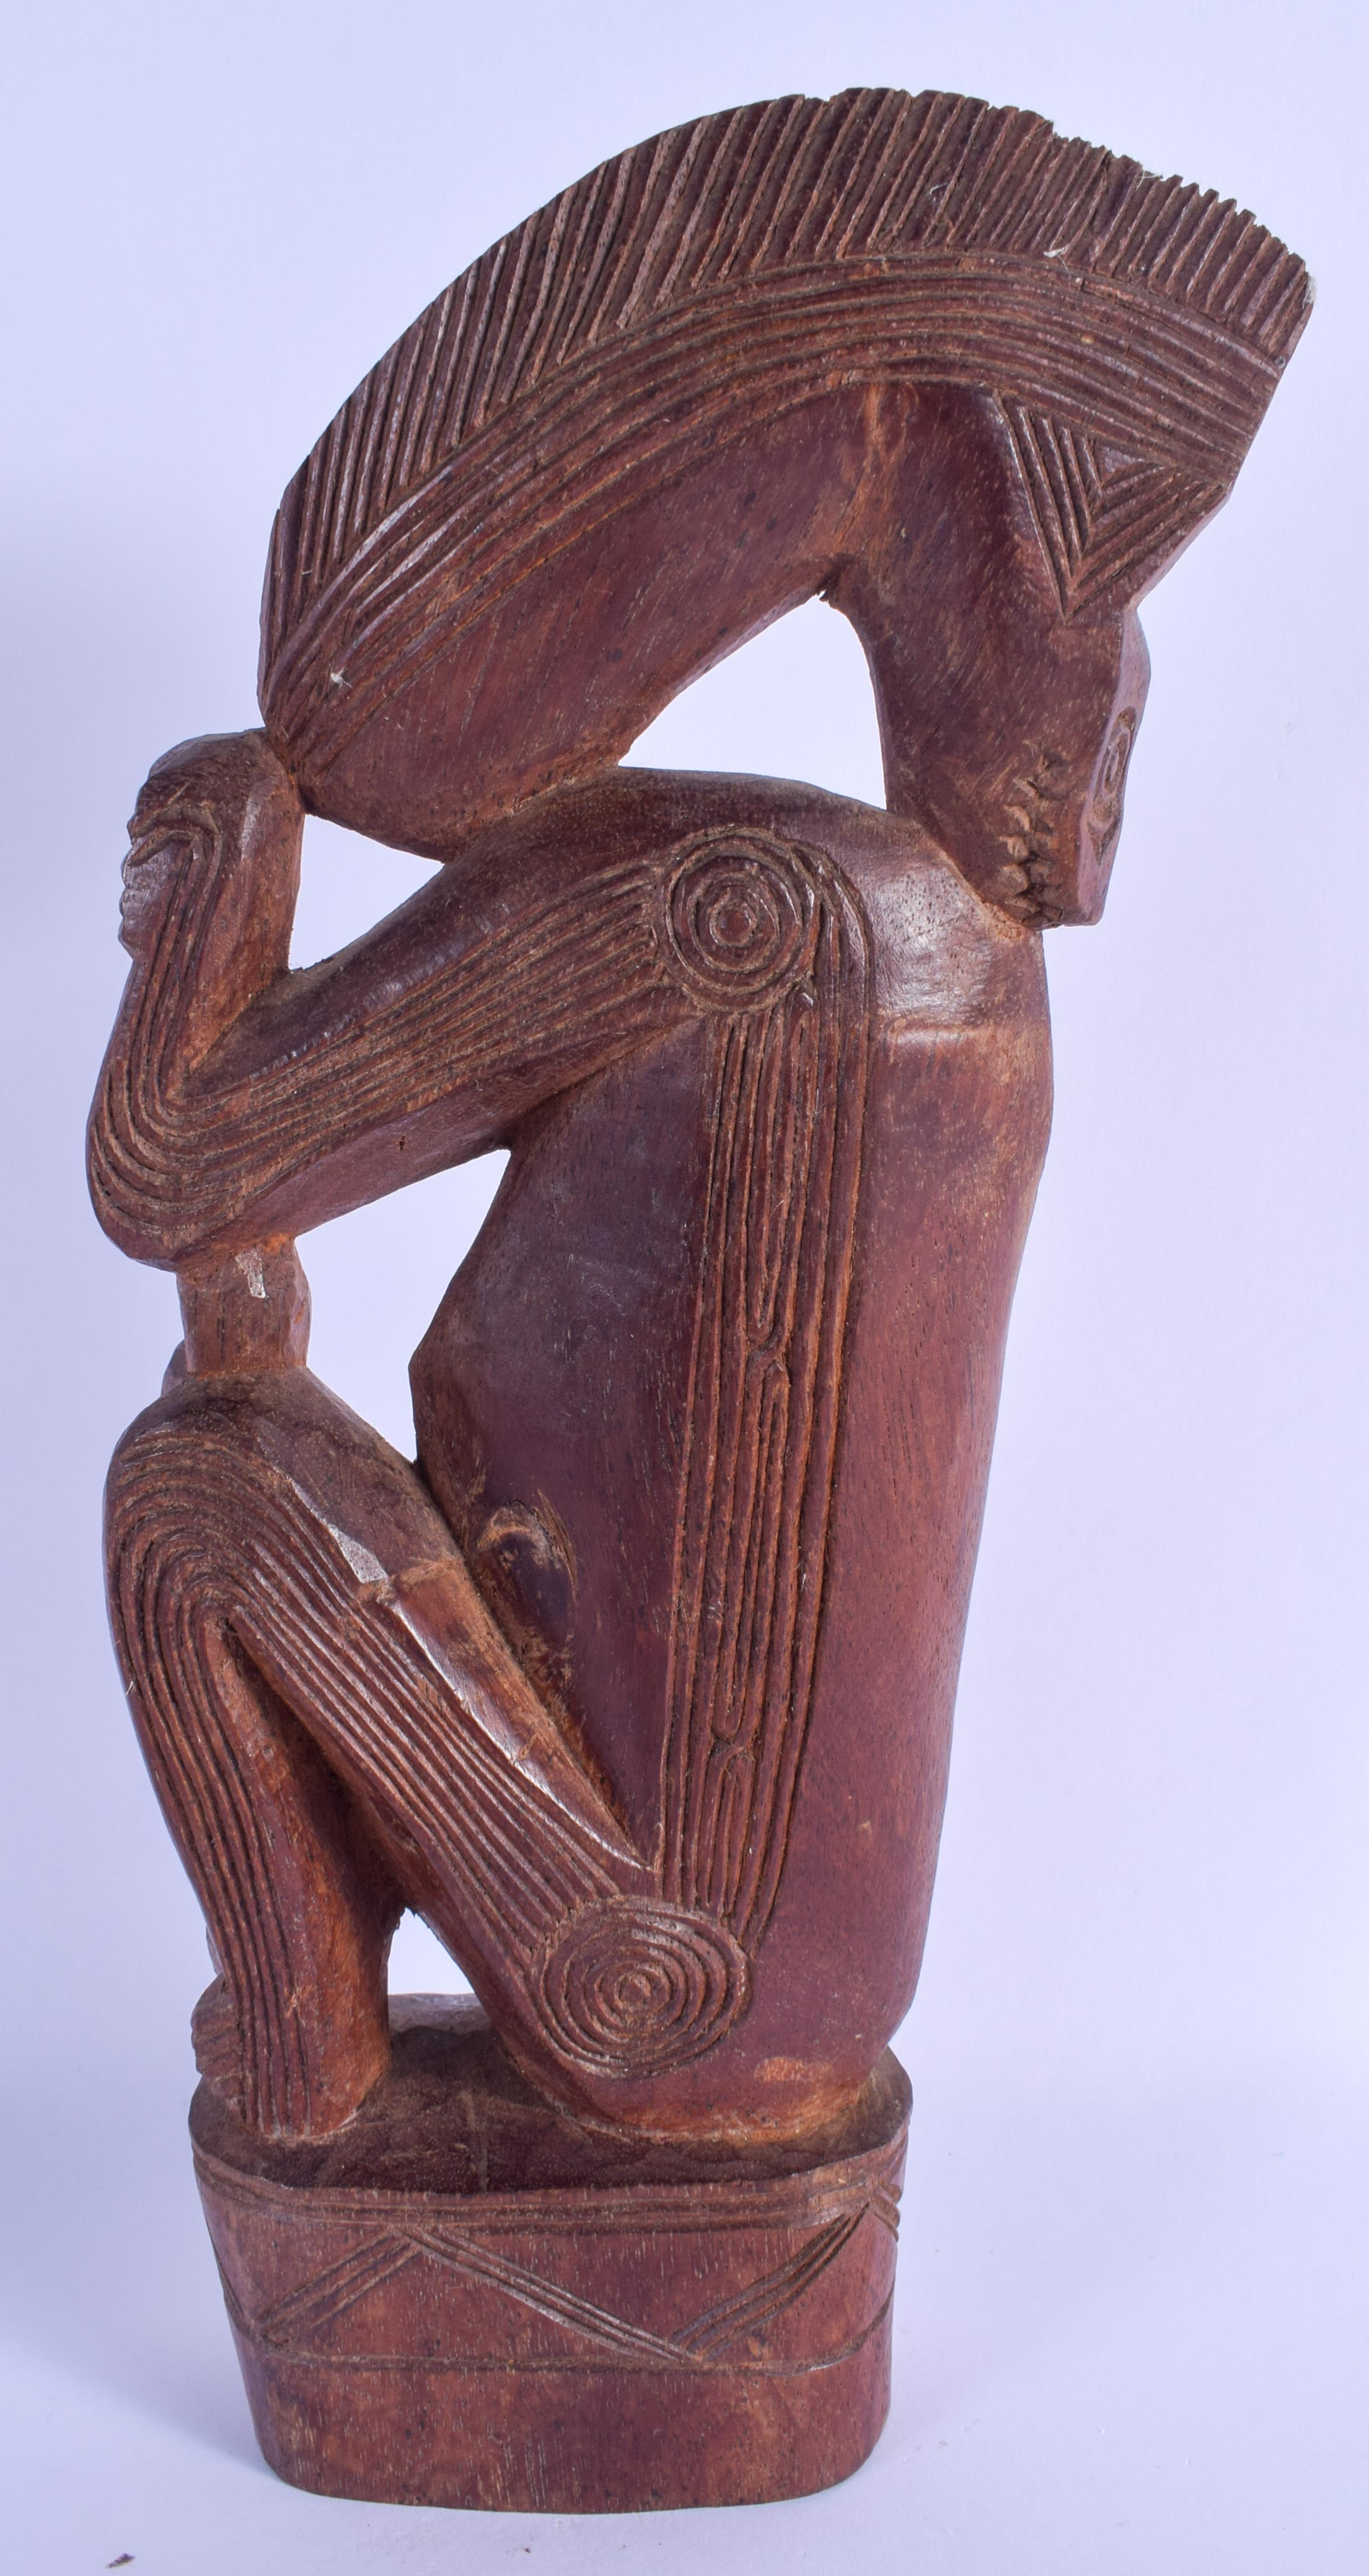 AN UNUSUAL TRIBAL CARVED HARDWOOD FIGURE OF AN ANIMAL possibly Papua New Guinea, Sepik 32 cm x 11 cm